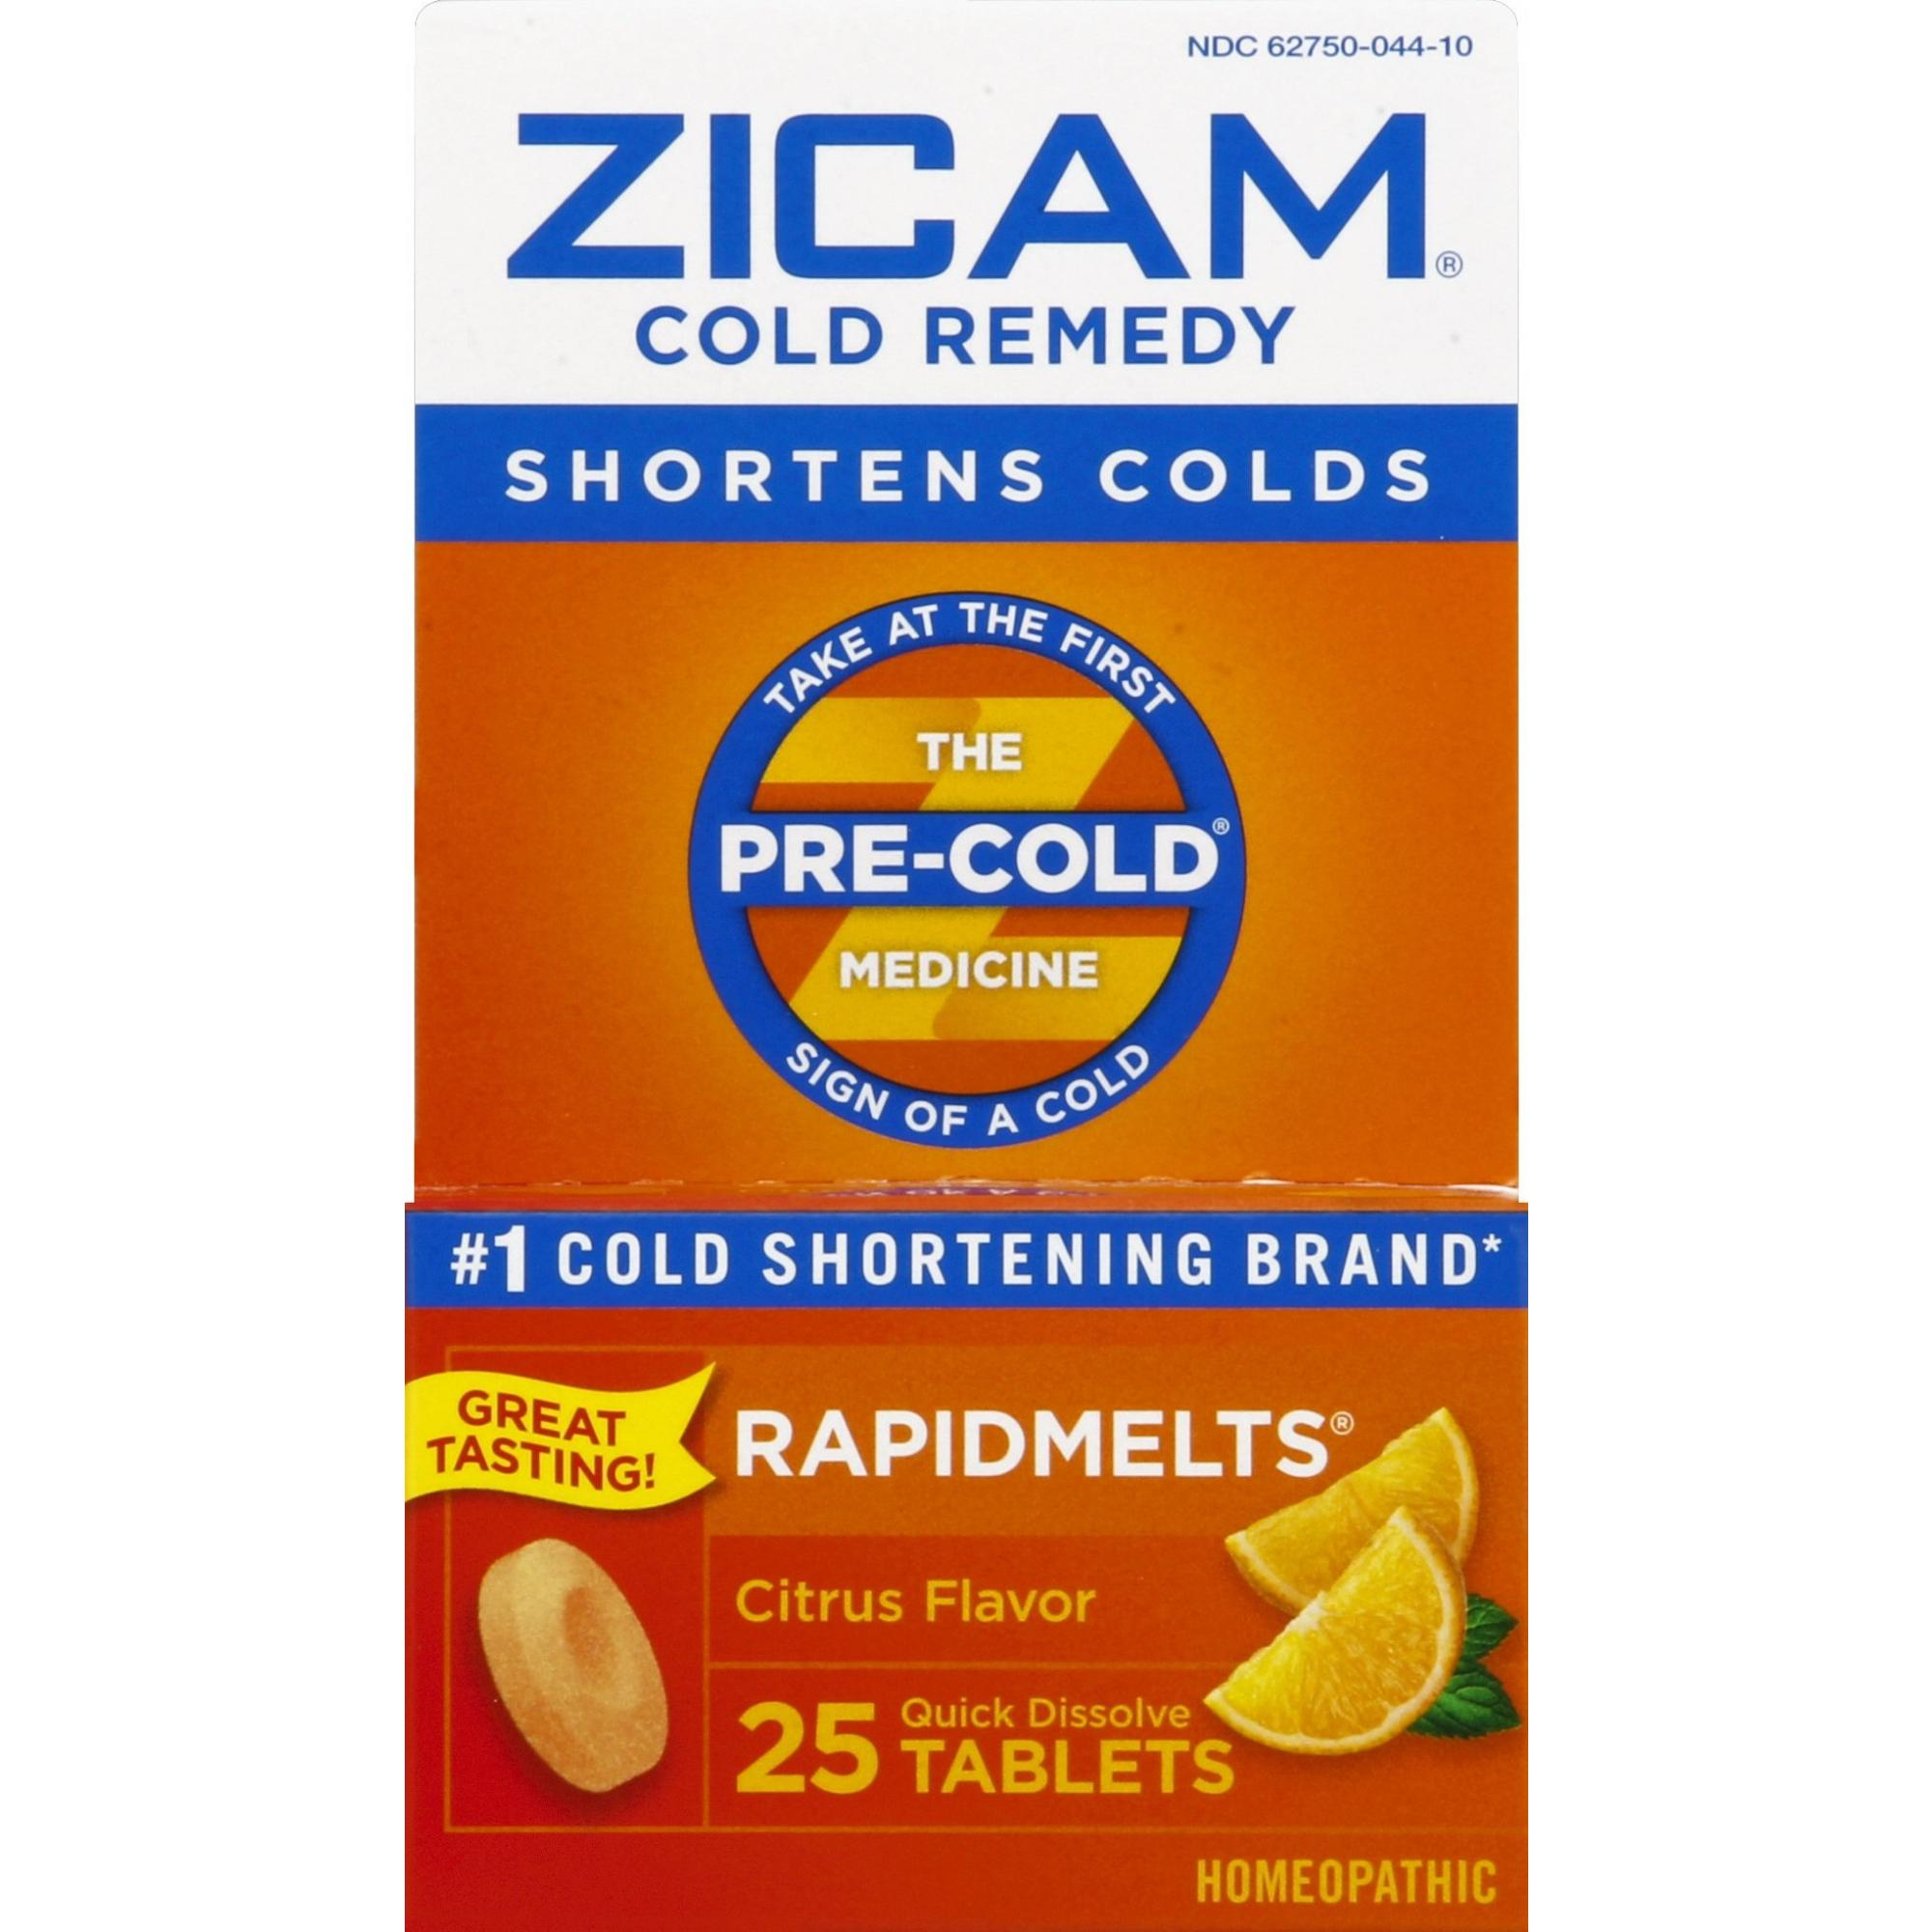 Zicam Cold Remedy Rapidmelts, Citrus Flavor, 25 Quick-Dissolve Tablets